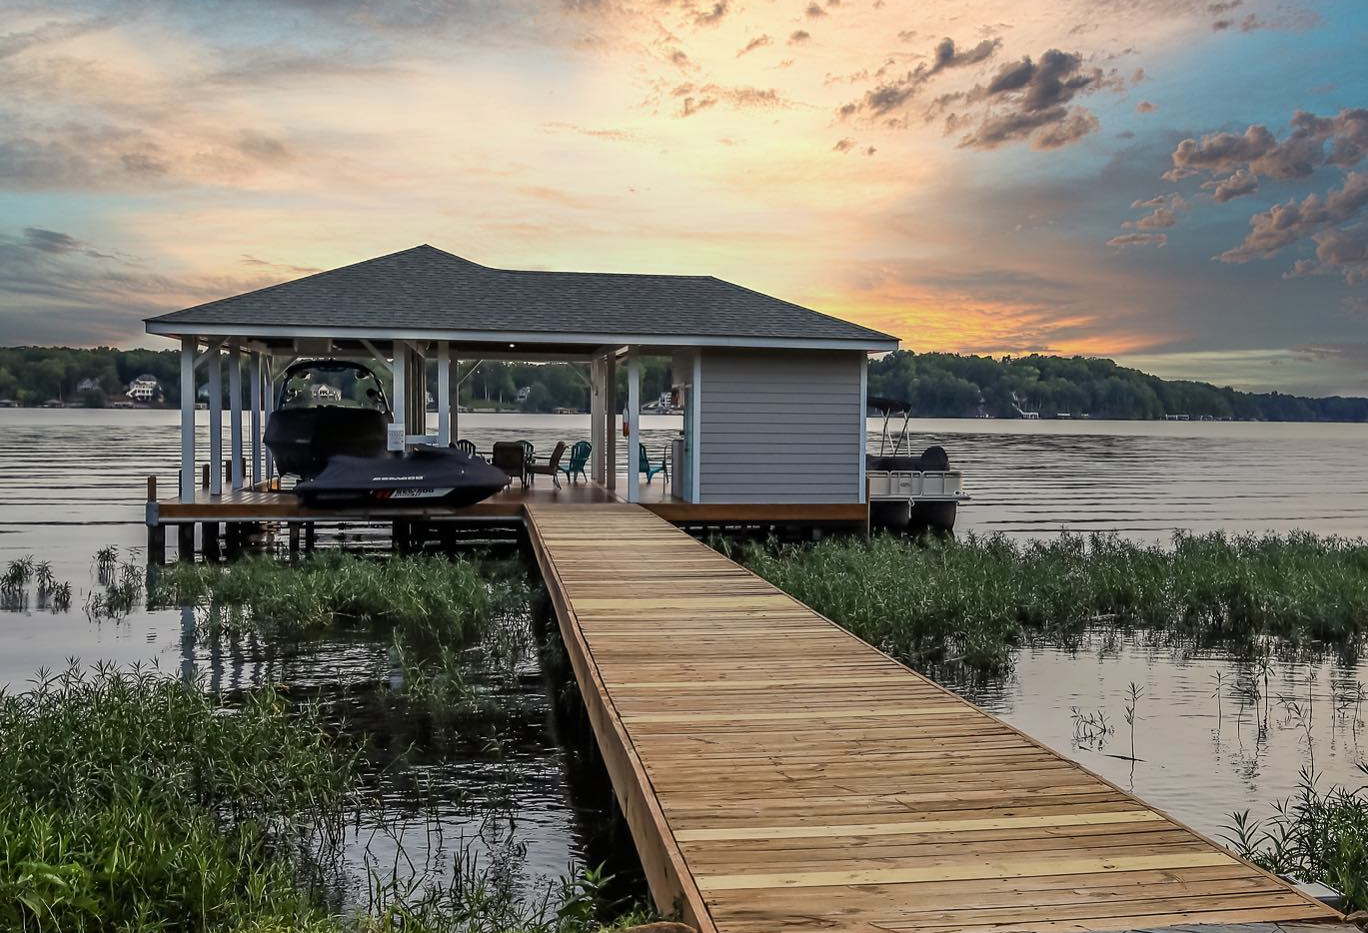 Sunset & Dusk Photography for Real Estate